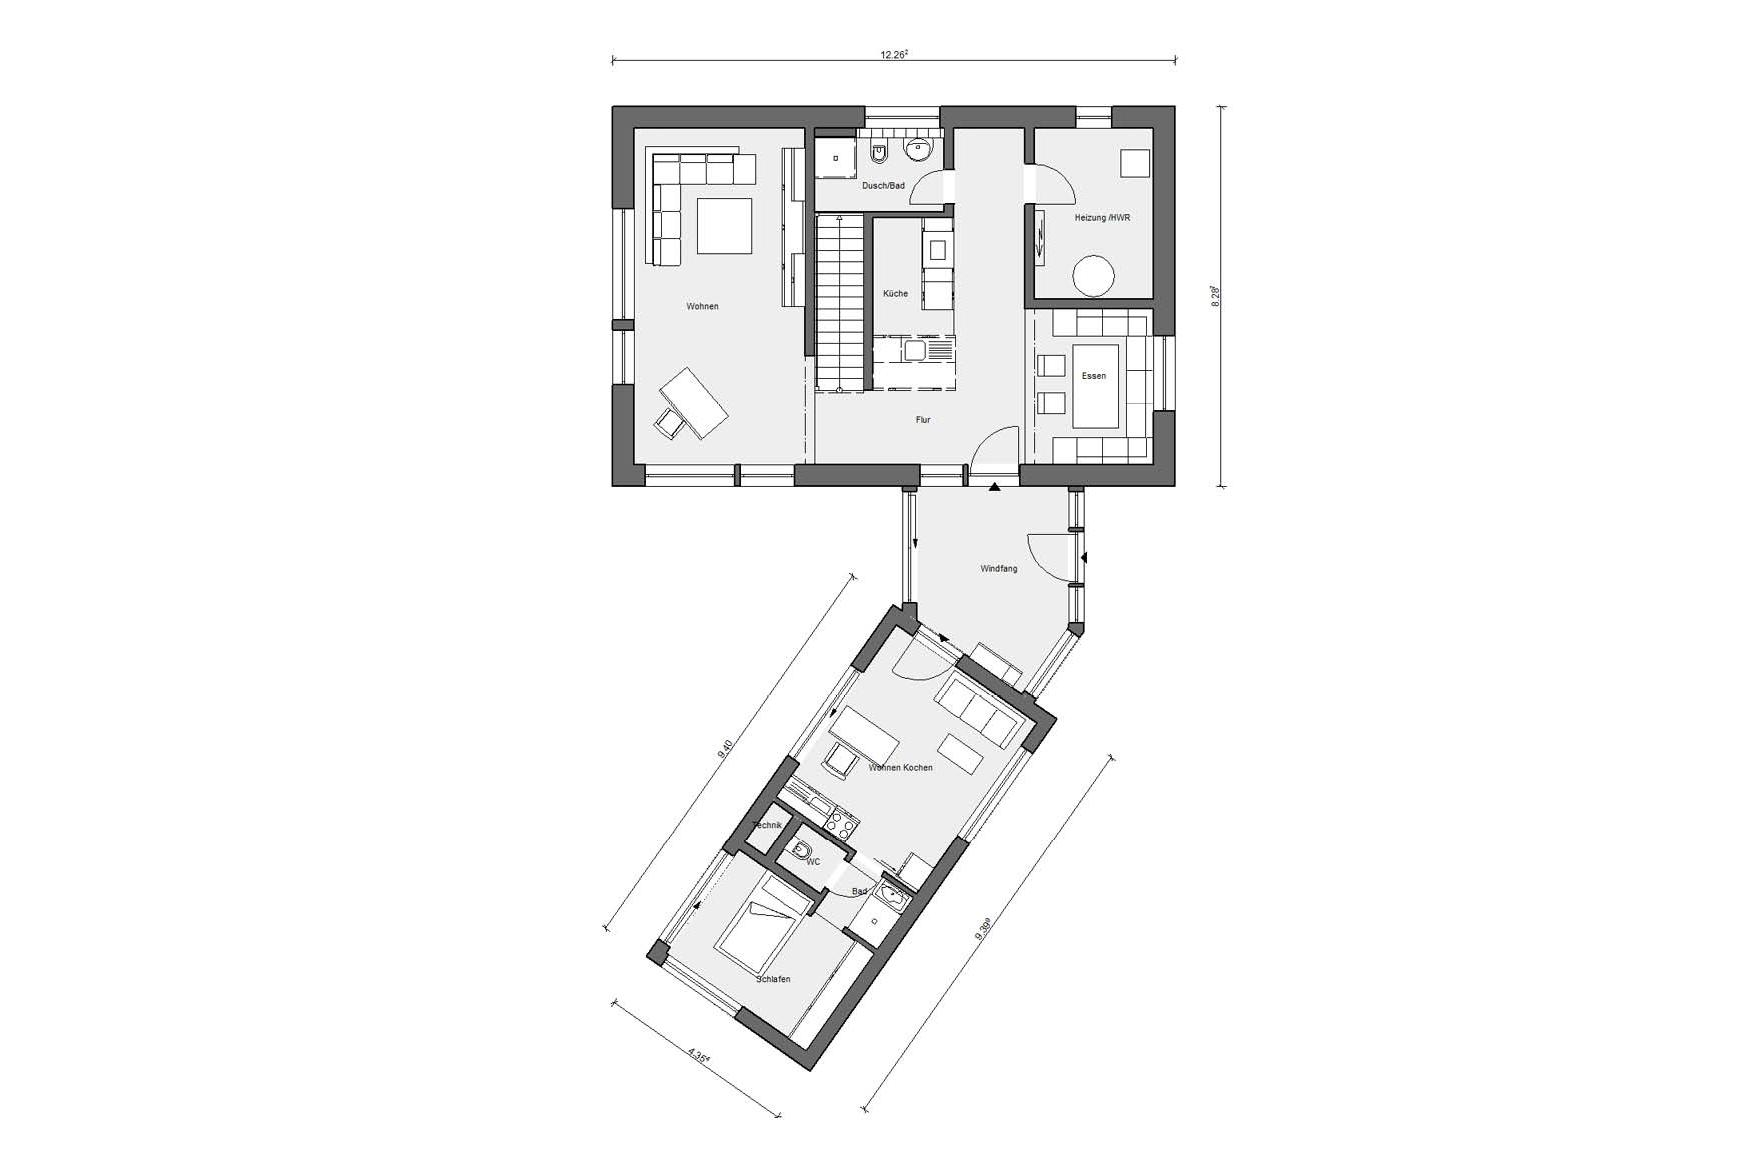 Ground floor plan E 20-161.2 Energy efficiency house